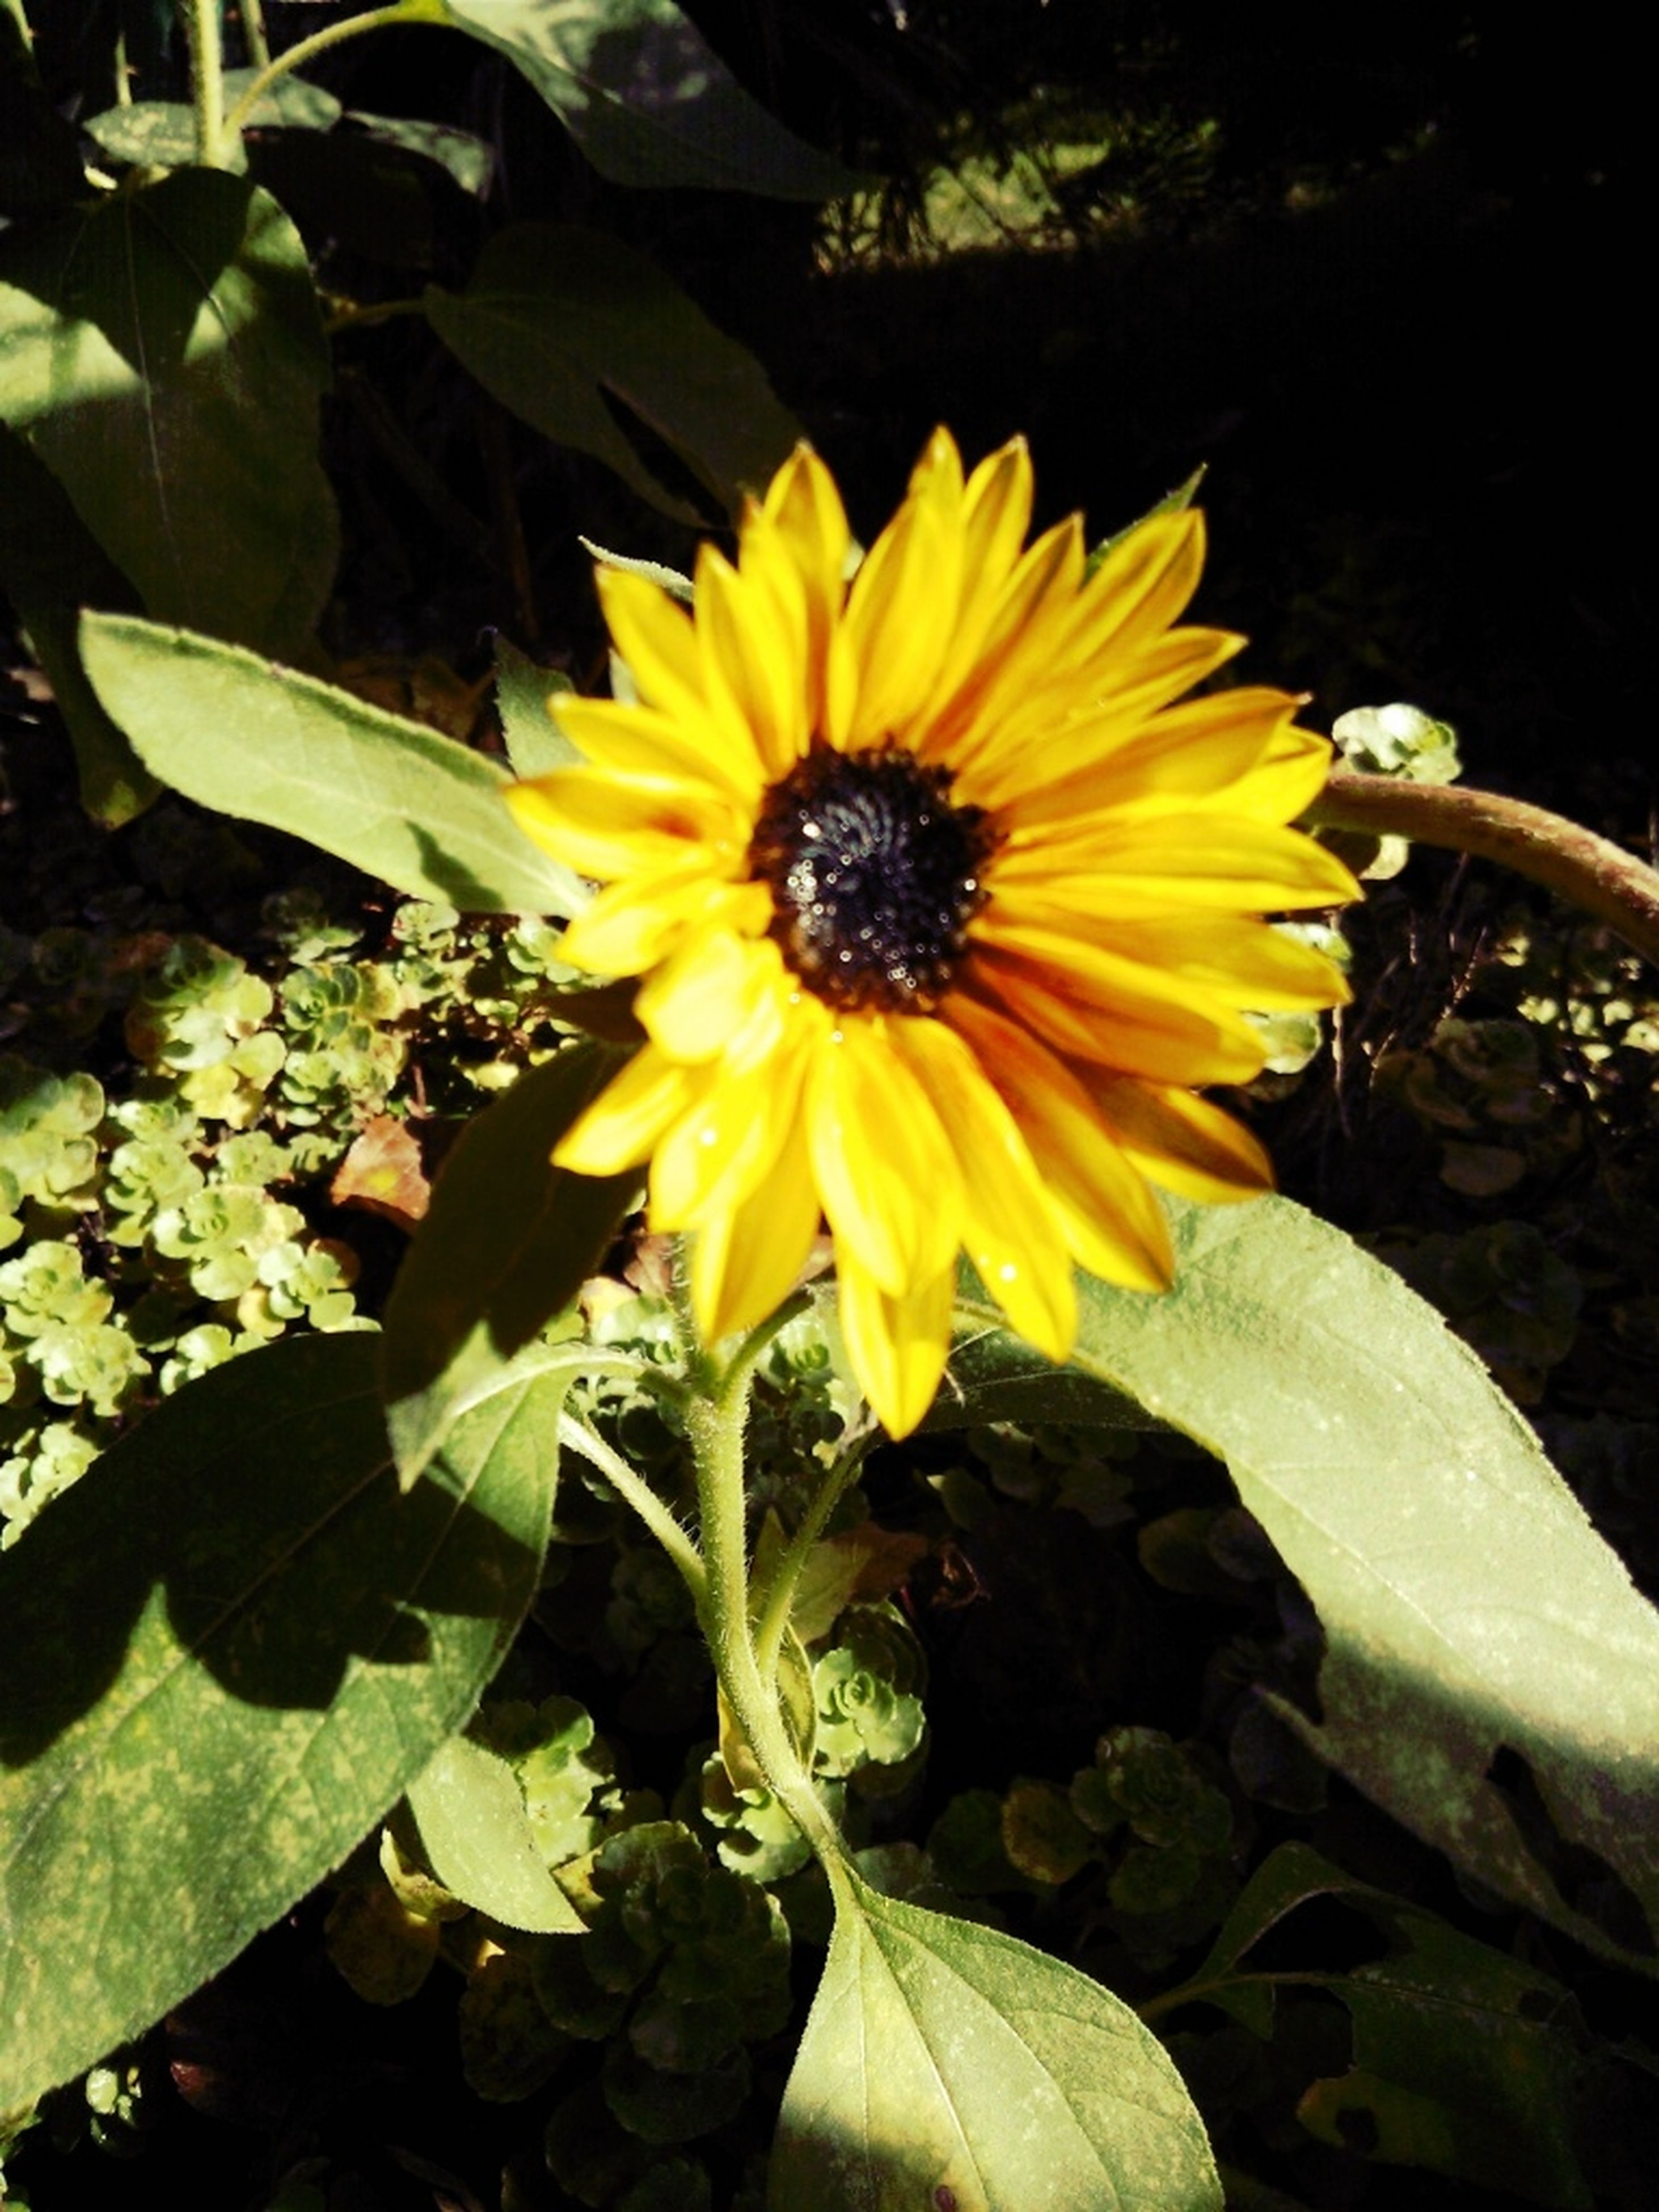 flower, petal, yellow, freshness, flower head, fragility, growth, leaf, beauty in nature, blooming, pollen, plant, single flower, nature, sunflower, close-up, in bloom, outdoors, high angle view, blossom